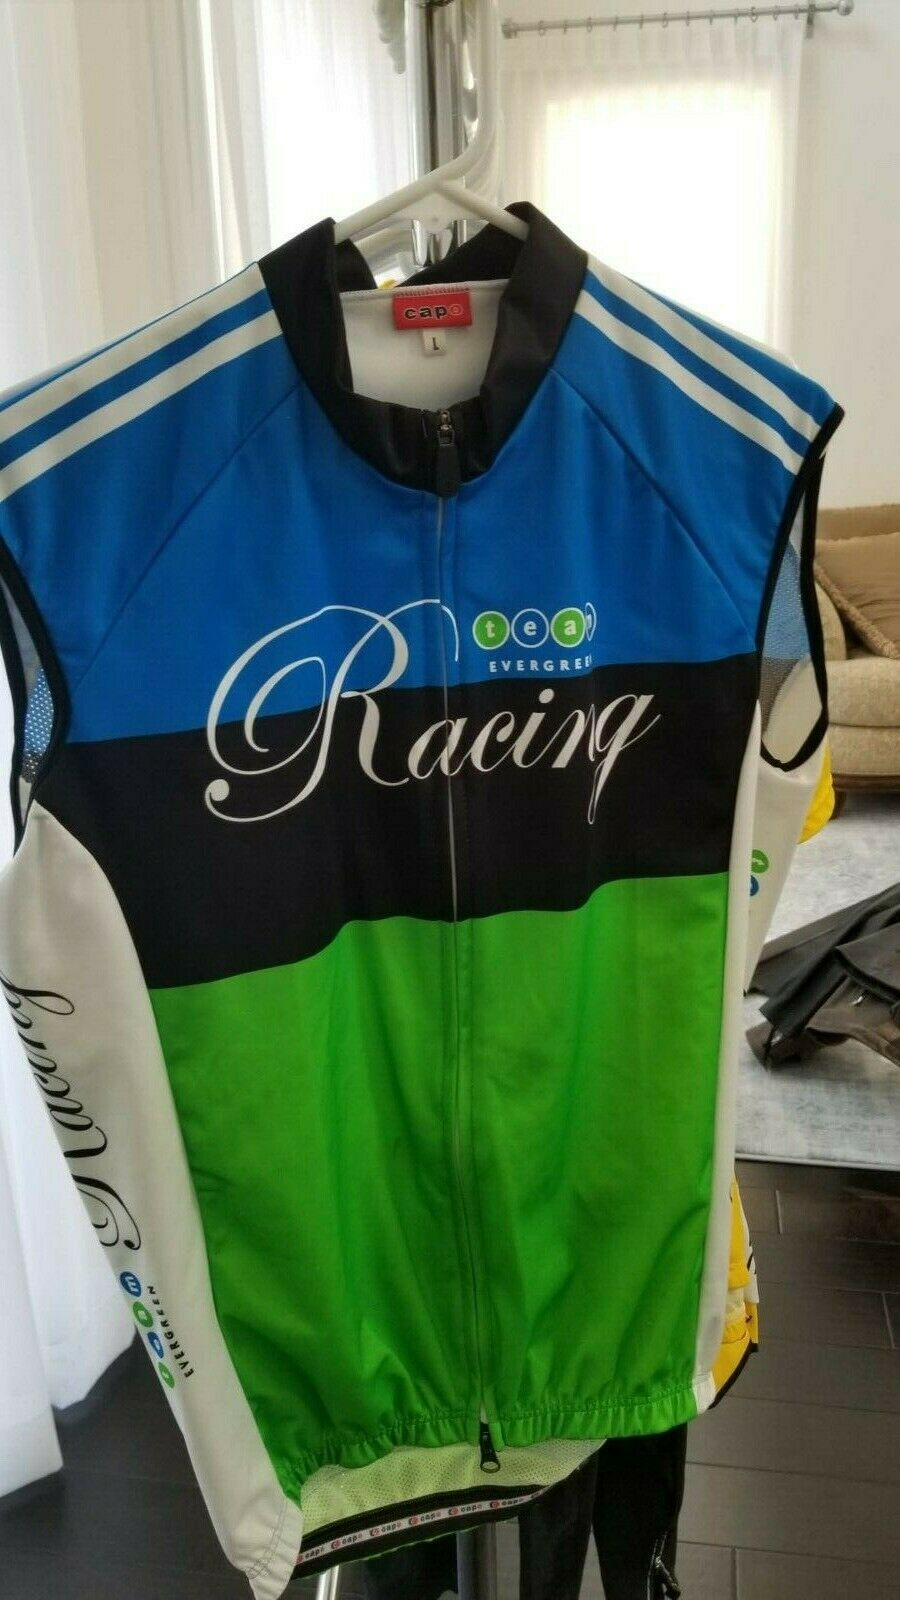 NEW CAPO Men's Cycling Vest sz L Team  Evergreen  we take customers as our god